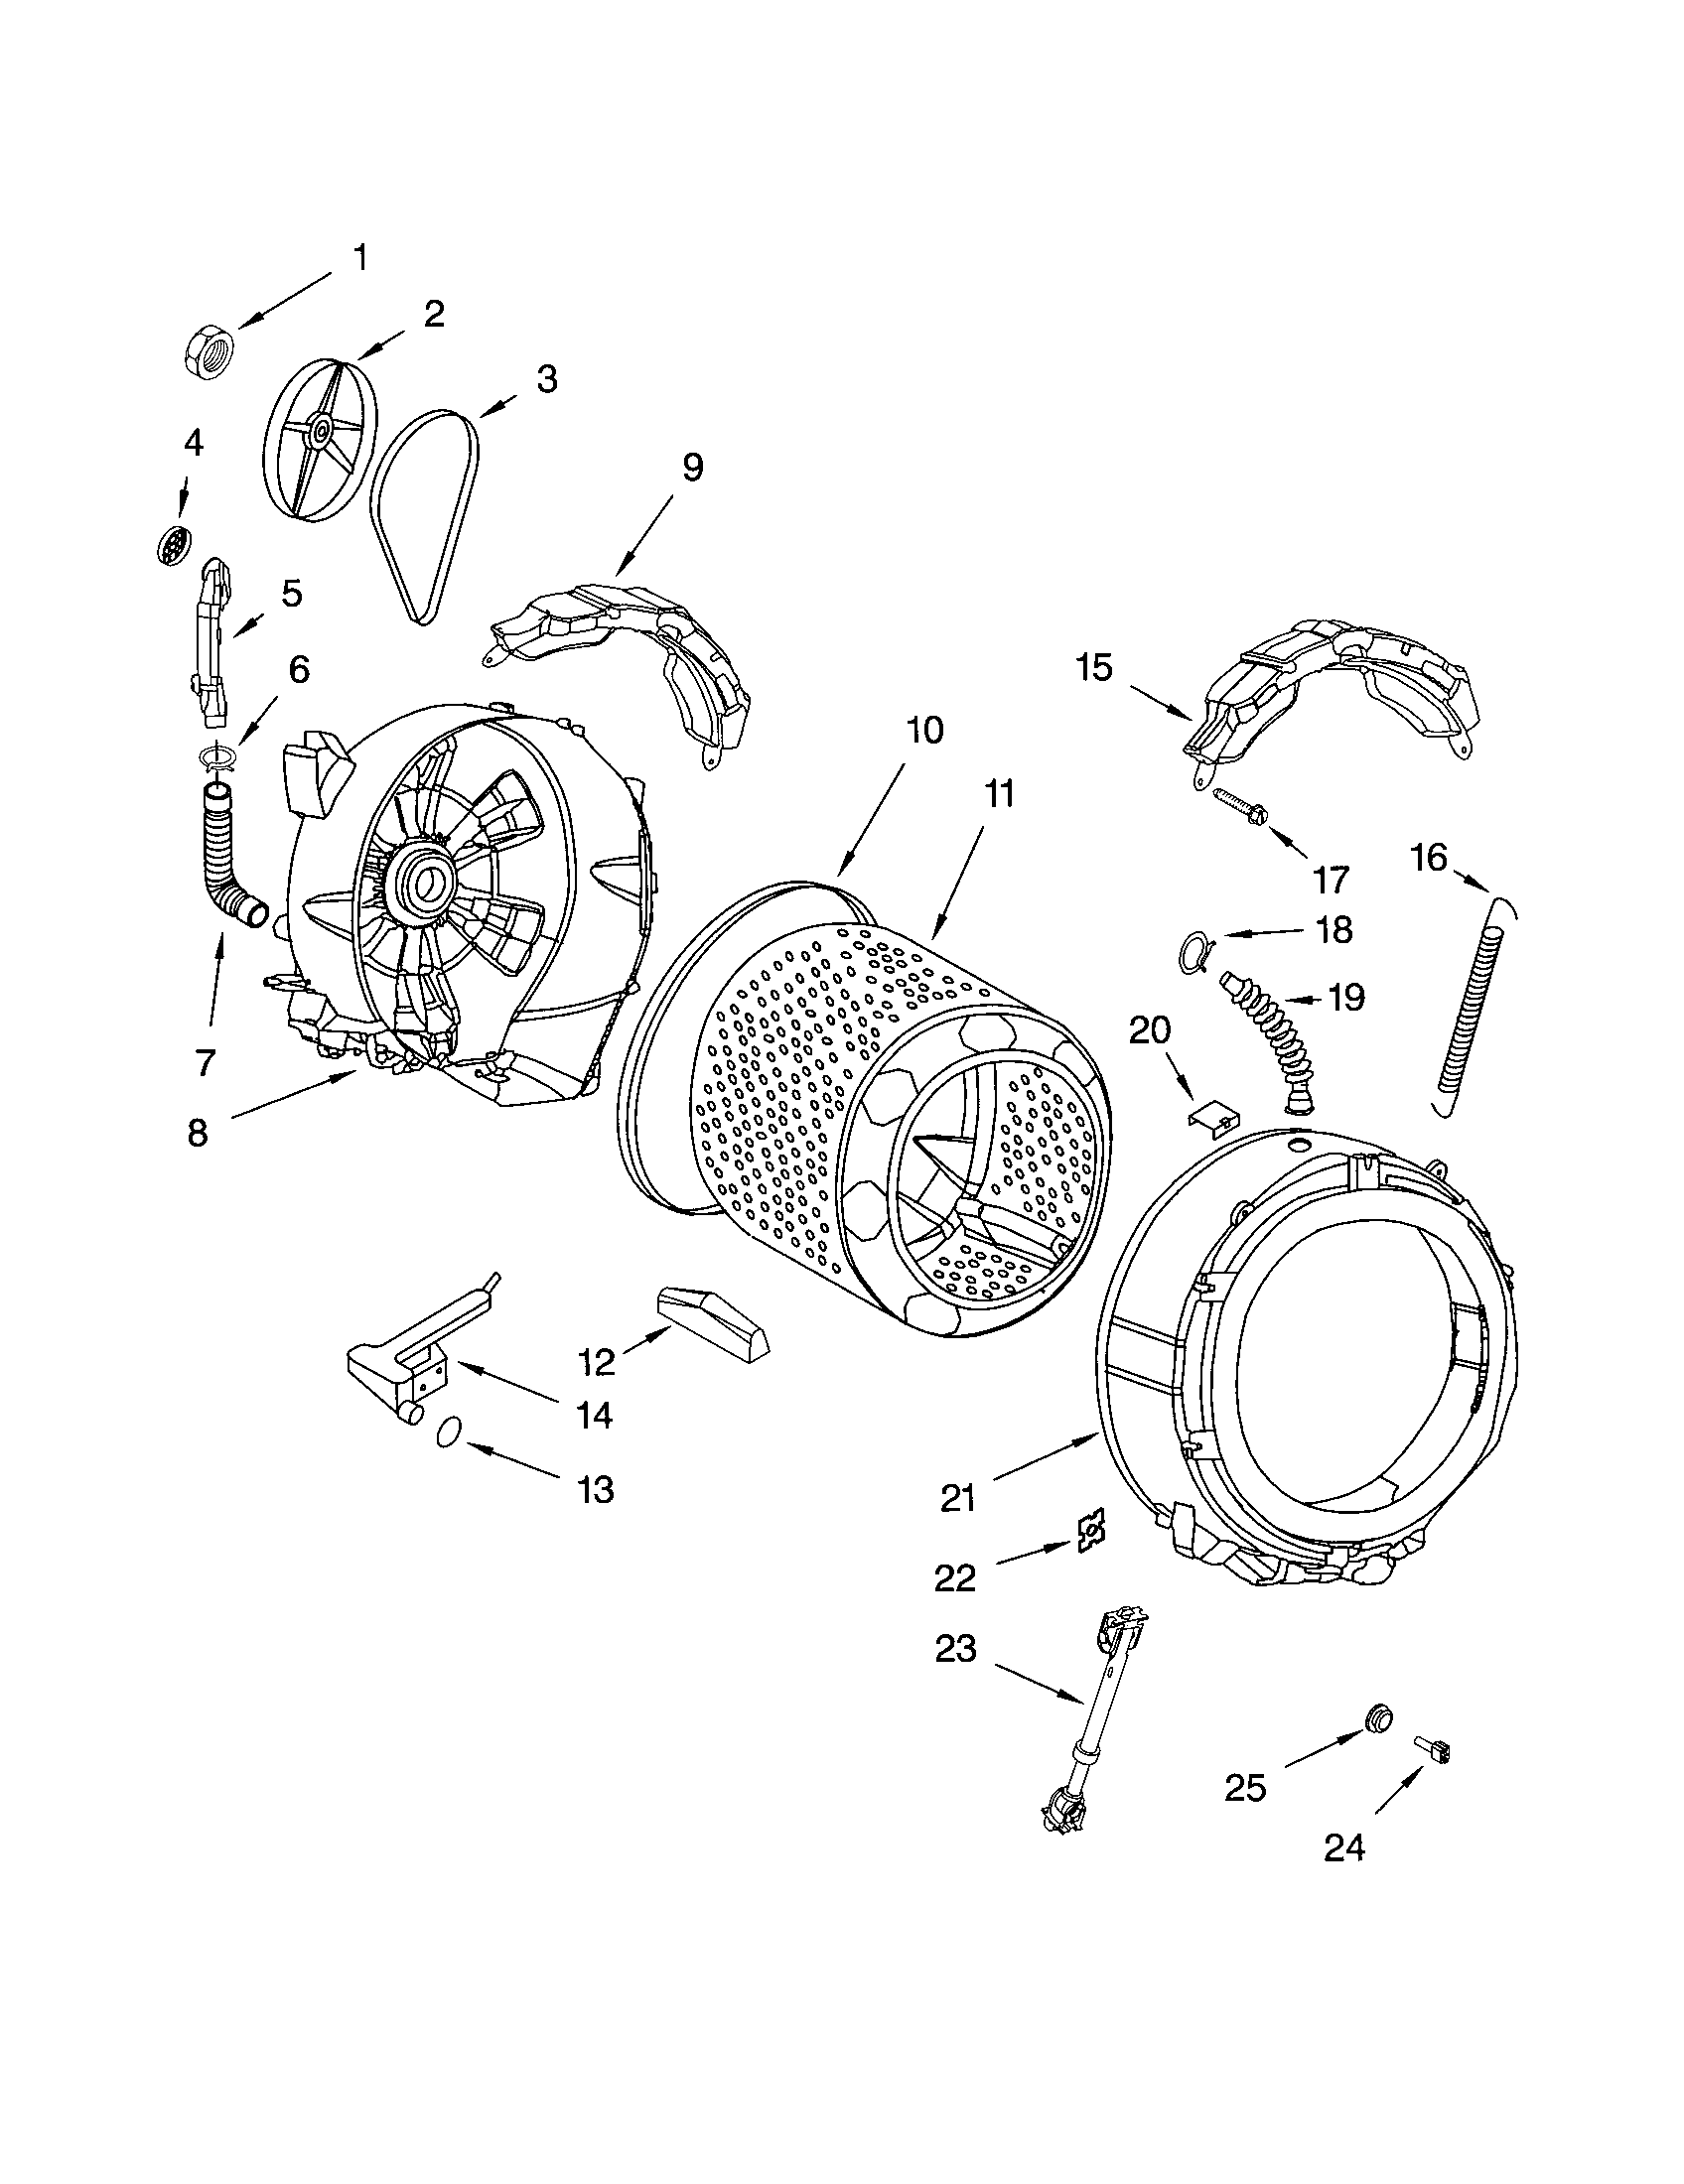 TUB AND BASKET Diagram & Parts List for Model 11042822220